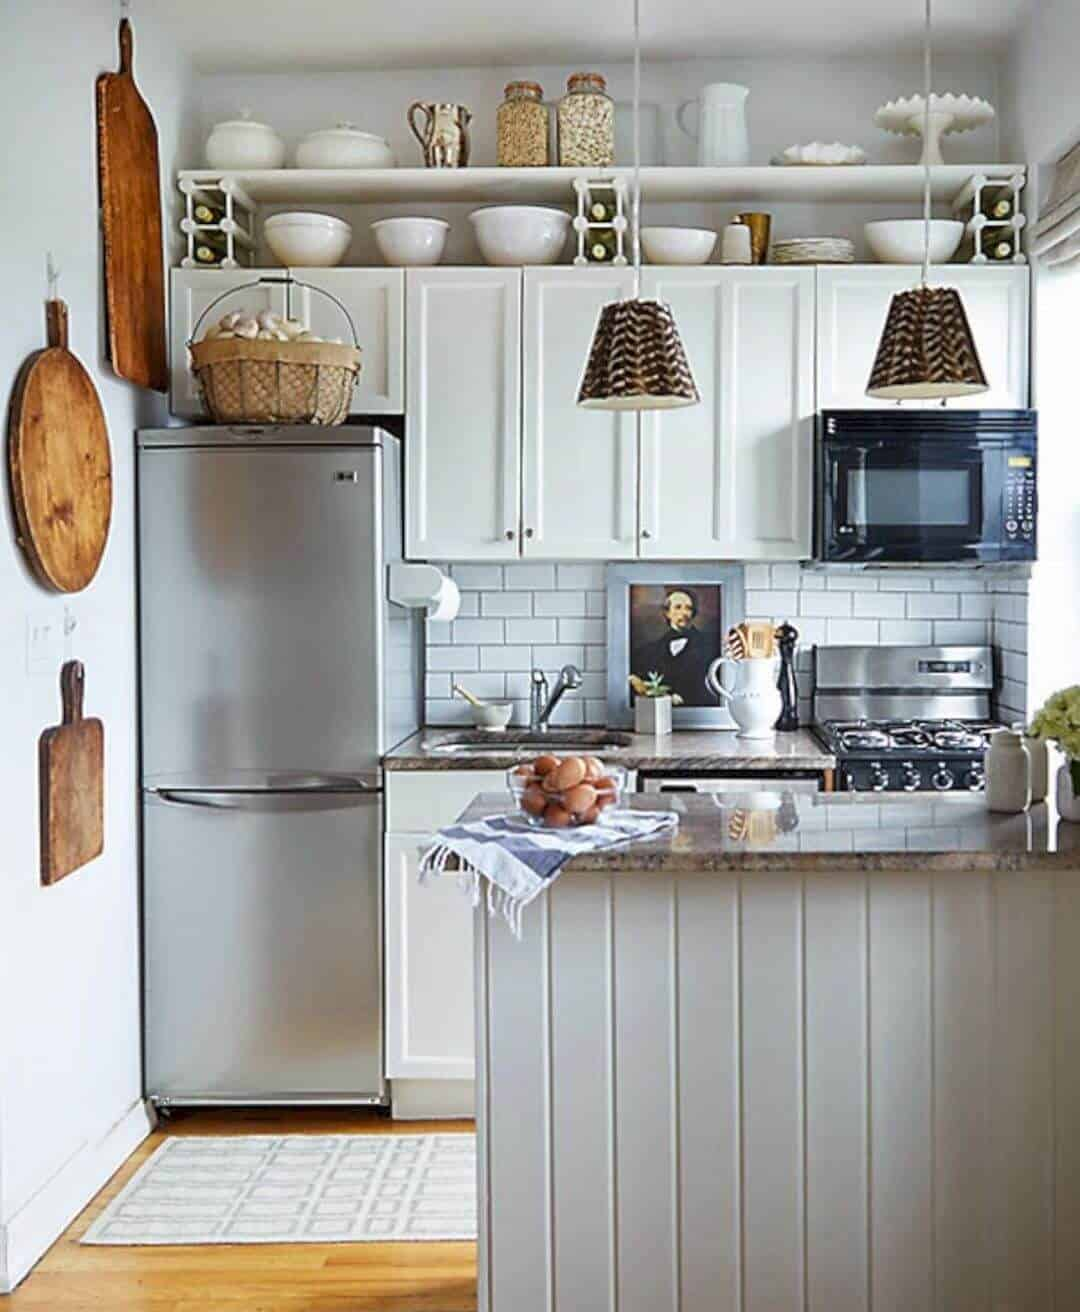 39 Exceptional Ways to Improve and Decorate with a Very ... on Tiny Kitchen Remodel Ideas  id=39150